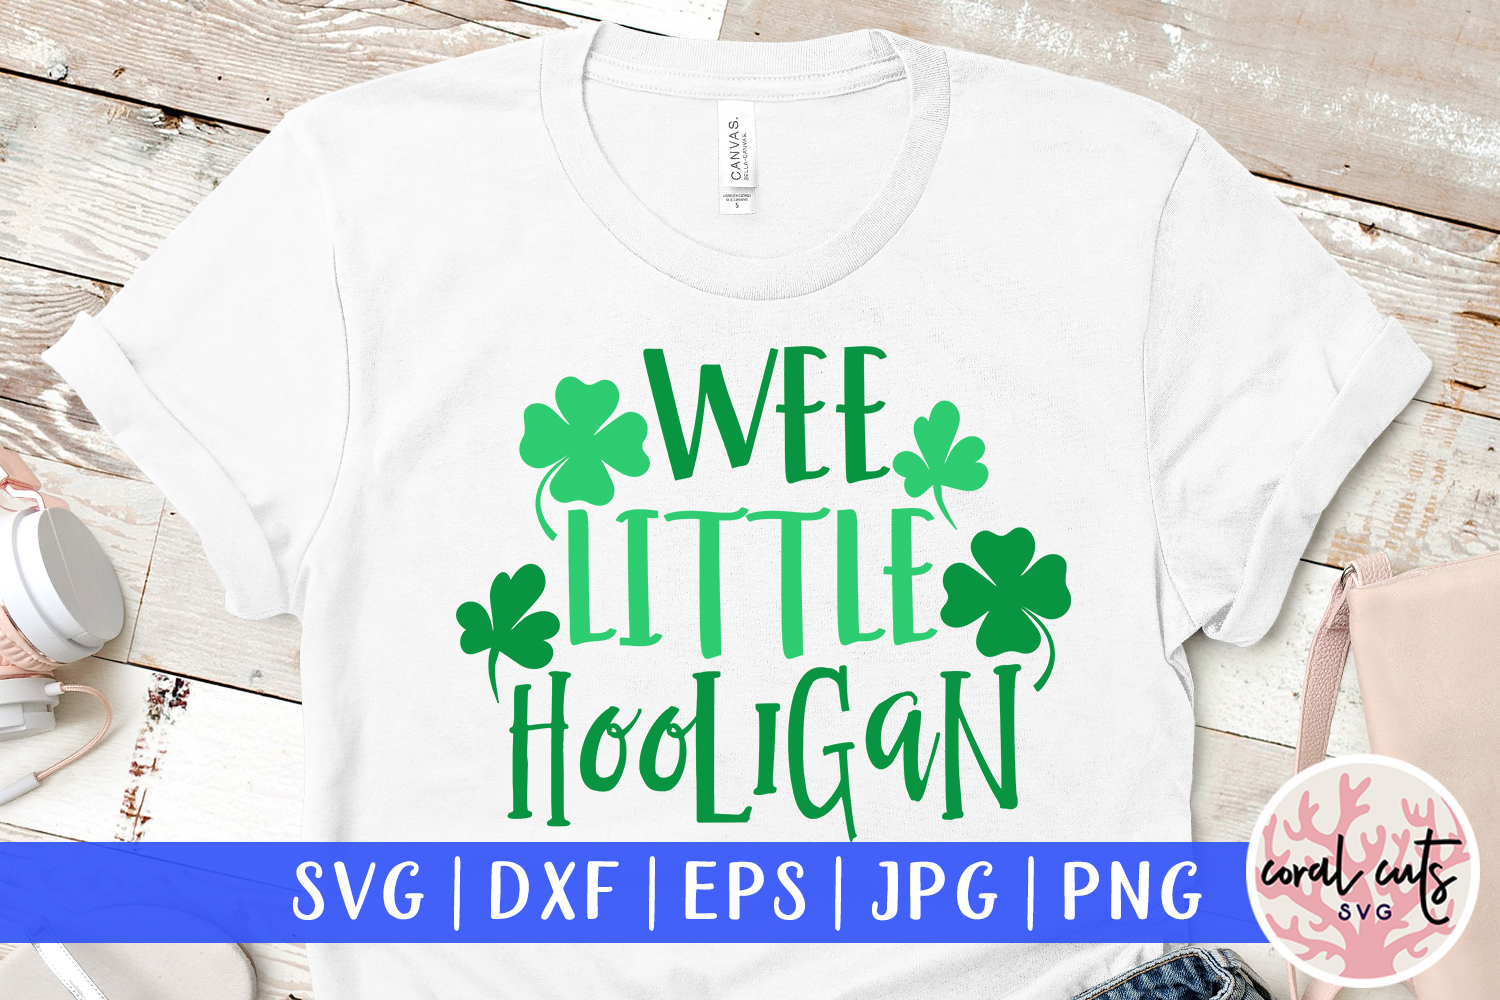 Wee little hooligan - St. Patrick's Day SVG EPS DXF PNG example image 1